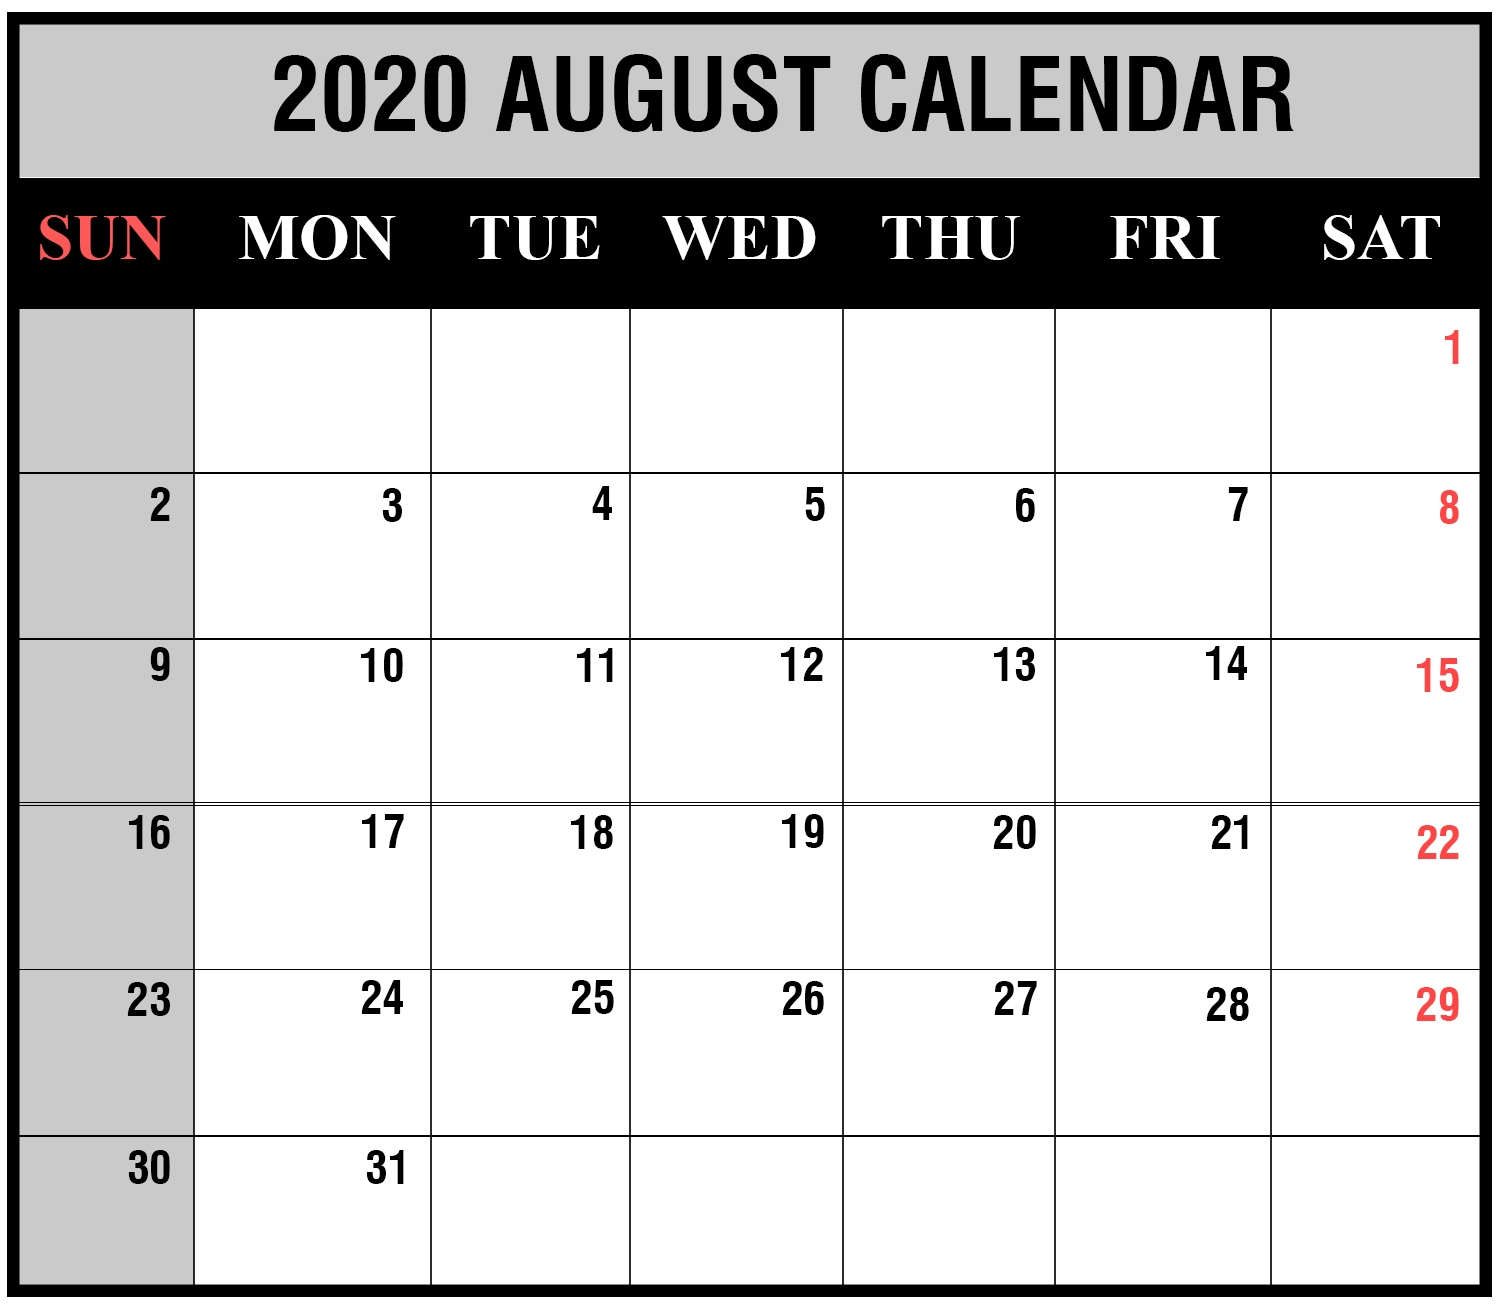 Insanity Max 30 Calendar Pdf | Calendar For Planning pertaining to Insanity Max 30 Schedule Month 2